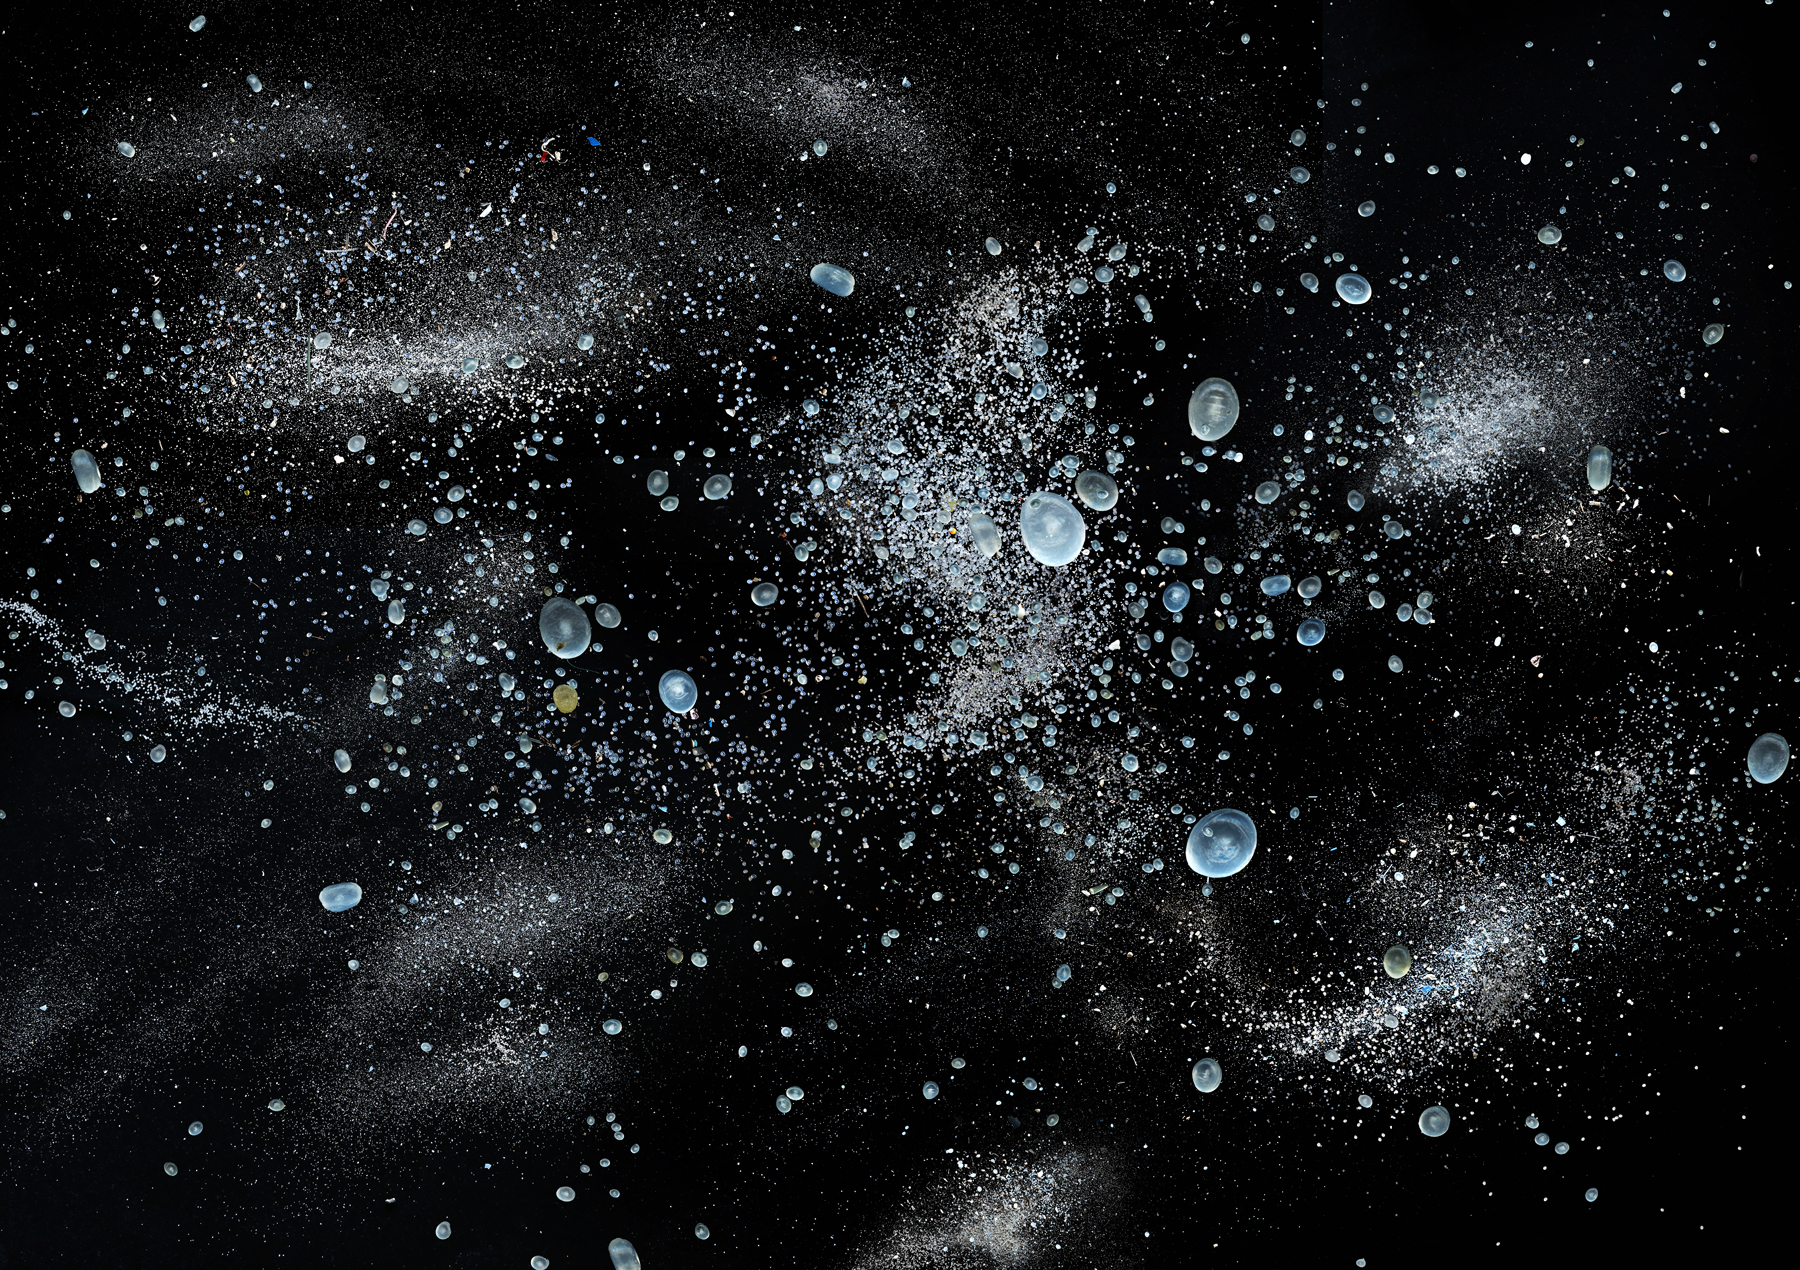 Hong Kong Soup: 1826 – Spilt  Representing 150 metric tons of nurdles (pre-production pellets), spilled from six cargo containers during Typhoon Vicente on July 23, 2012, adding to Hong Kong's waste issues in its seas and on its beaches. The image mirrors the night sky on the day of the spillage and depicts a collection recovered from six of the worst affected beaches soon after the incident  (from 'Hong Kong Soup:1826' series)